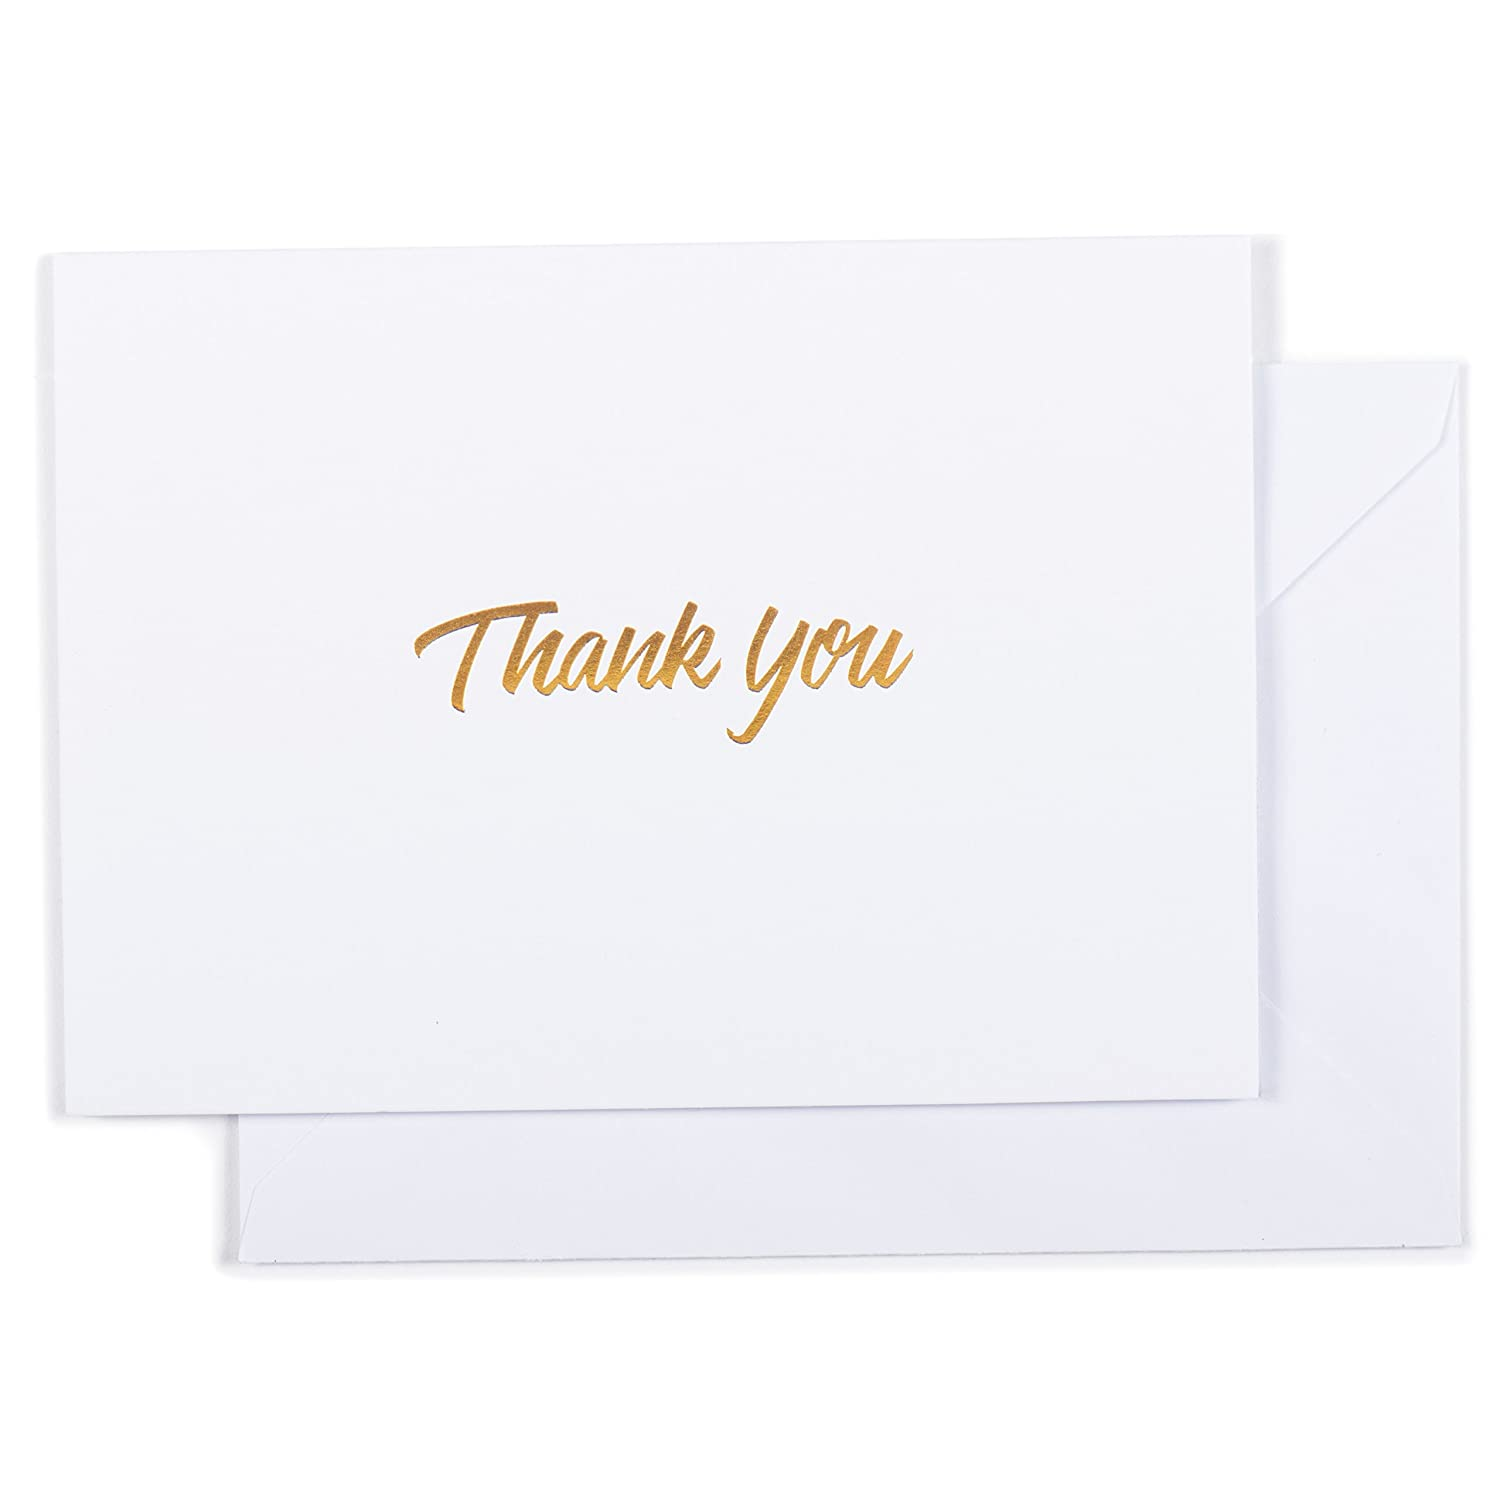 100 Thank You Cards Black Bulk Note Cards With Gold Foil Embossed